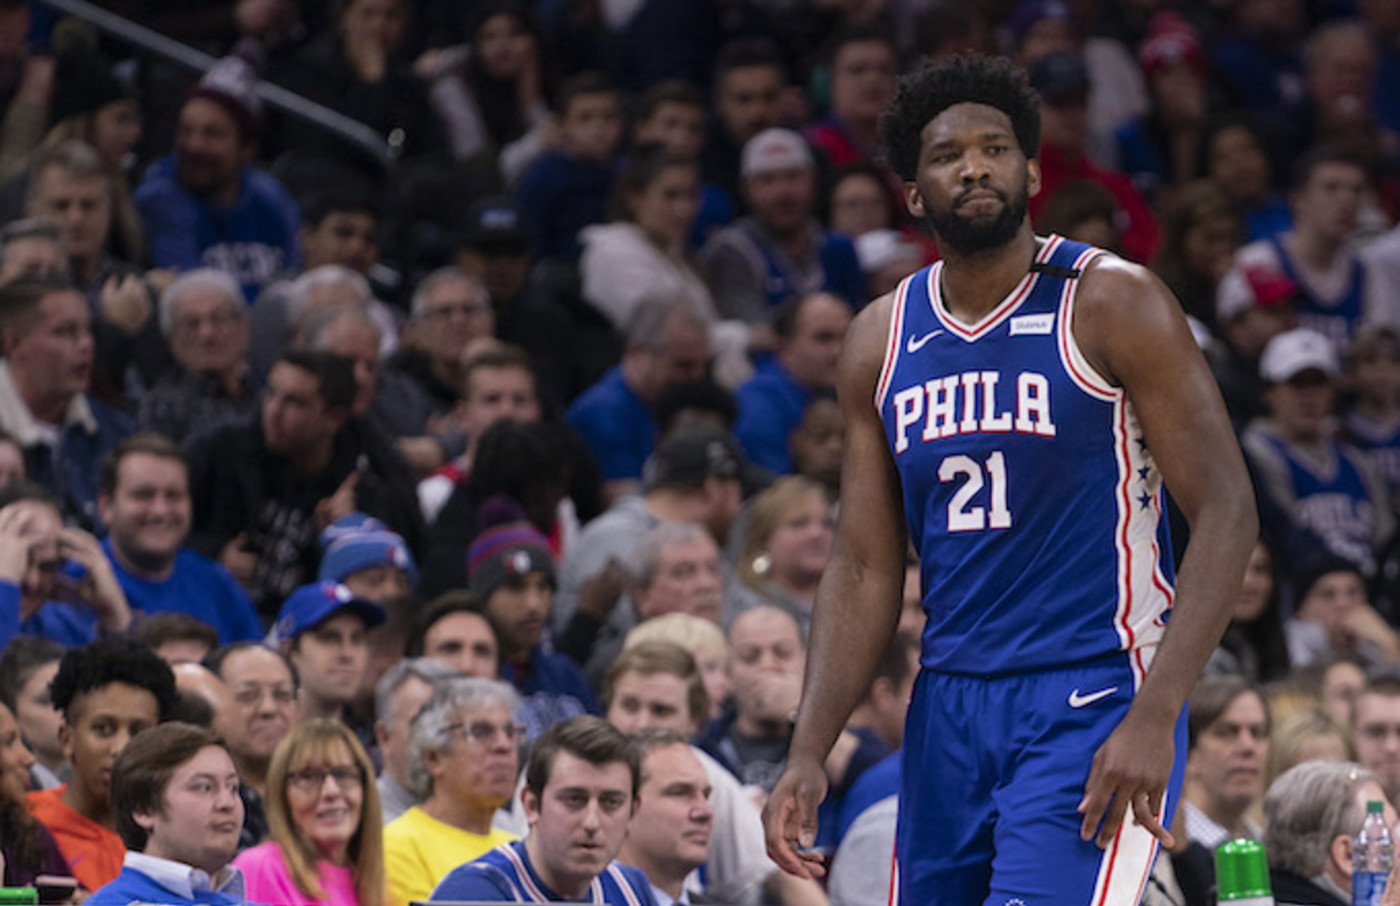 Joel Embiid #21 of the Philadelphia 76ers walks off the court after injuring his finger.